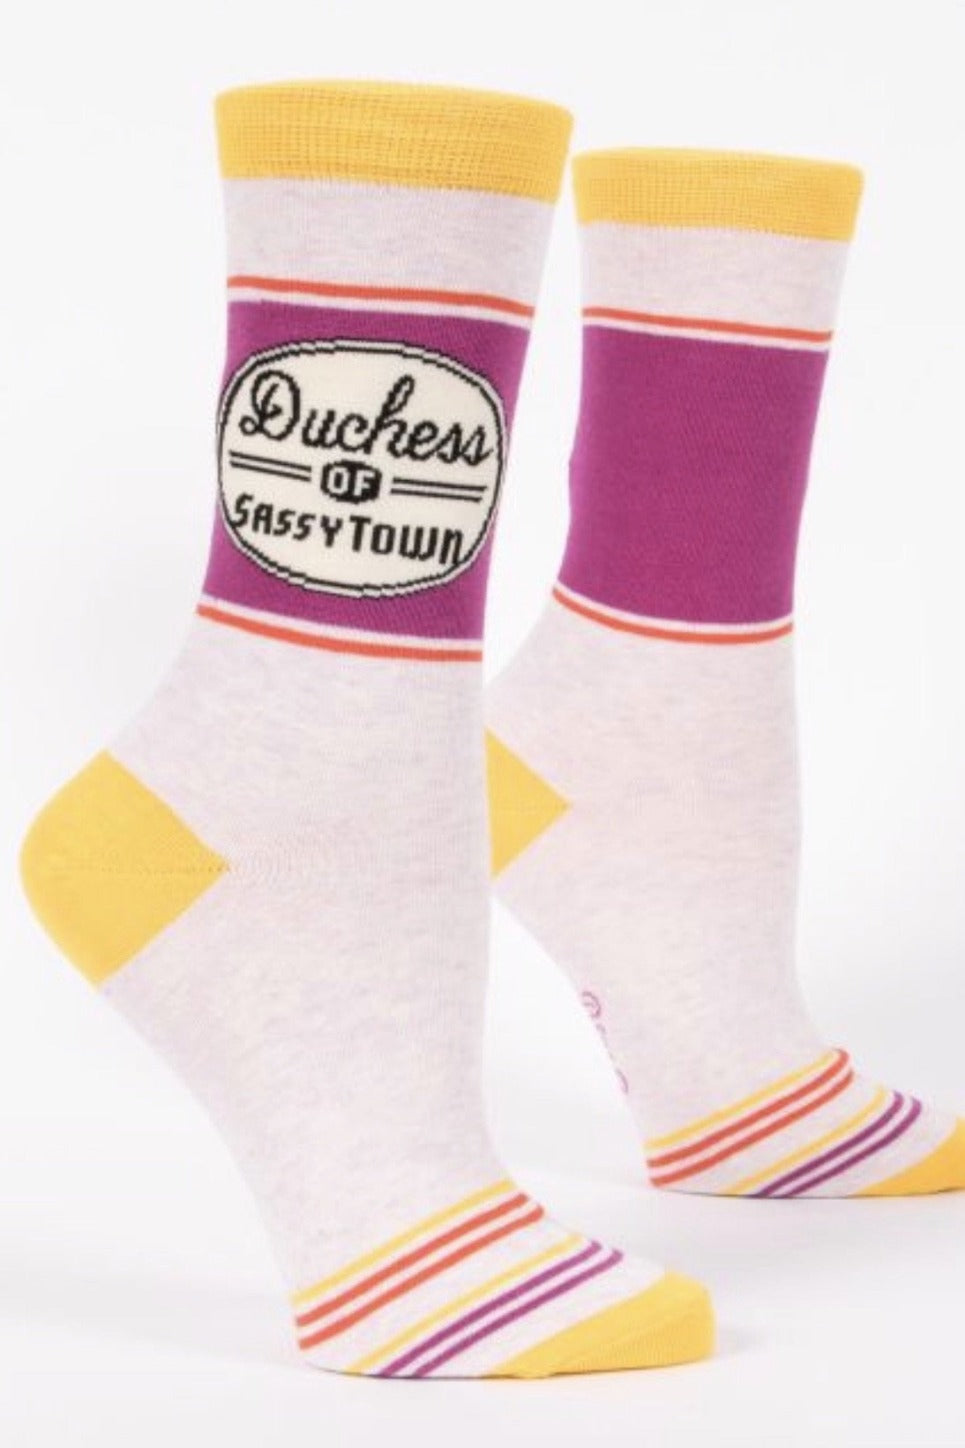 Duchess of Sassytown CrewSocks